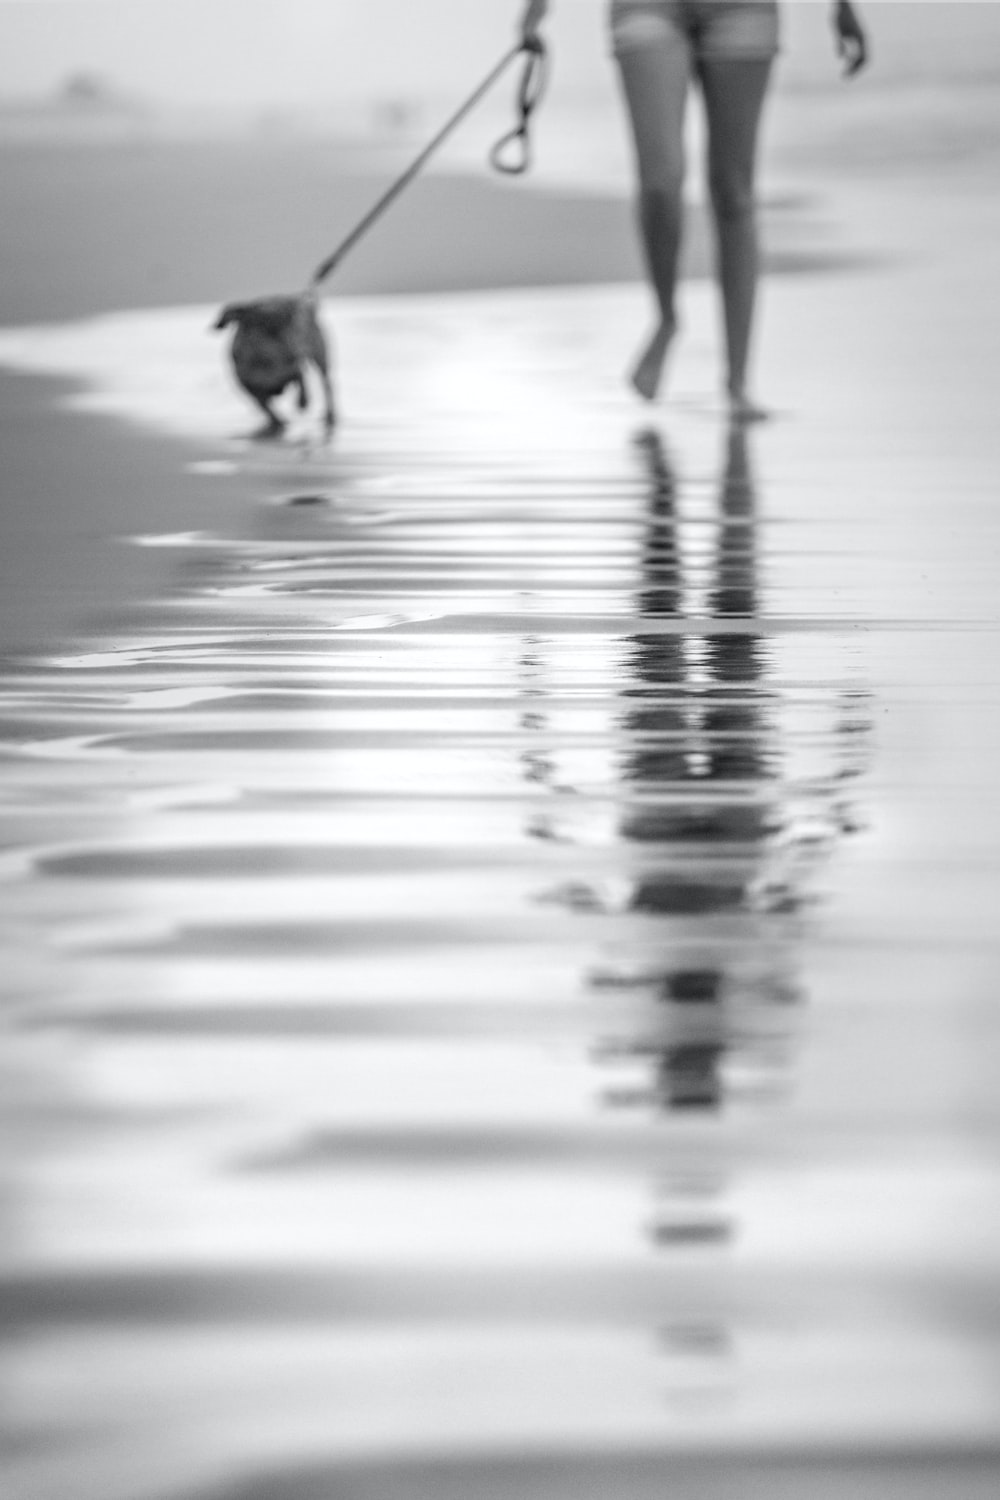 silhouette of people walking on wet ground